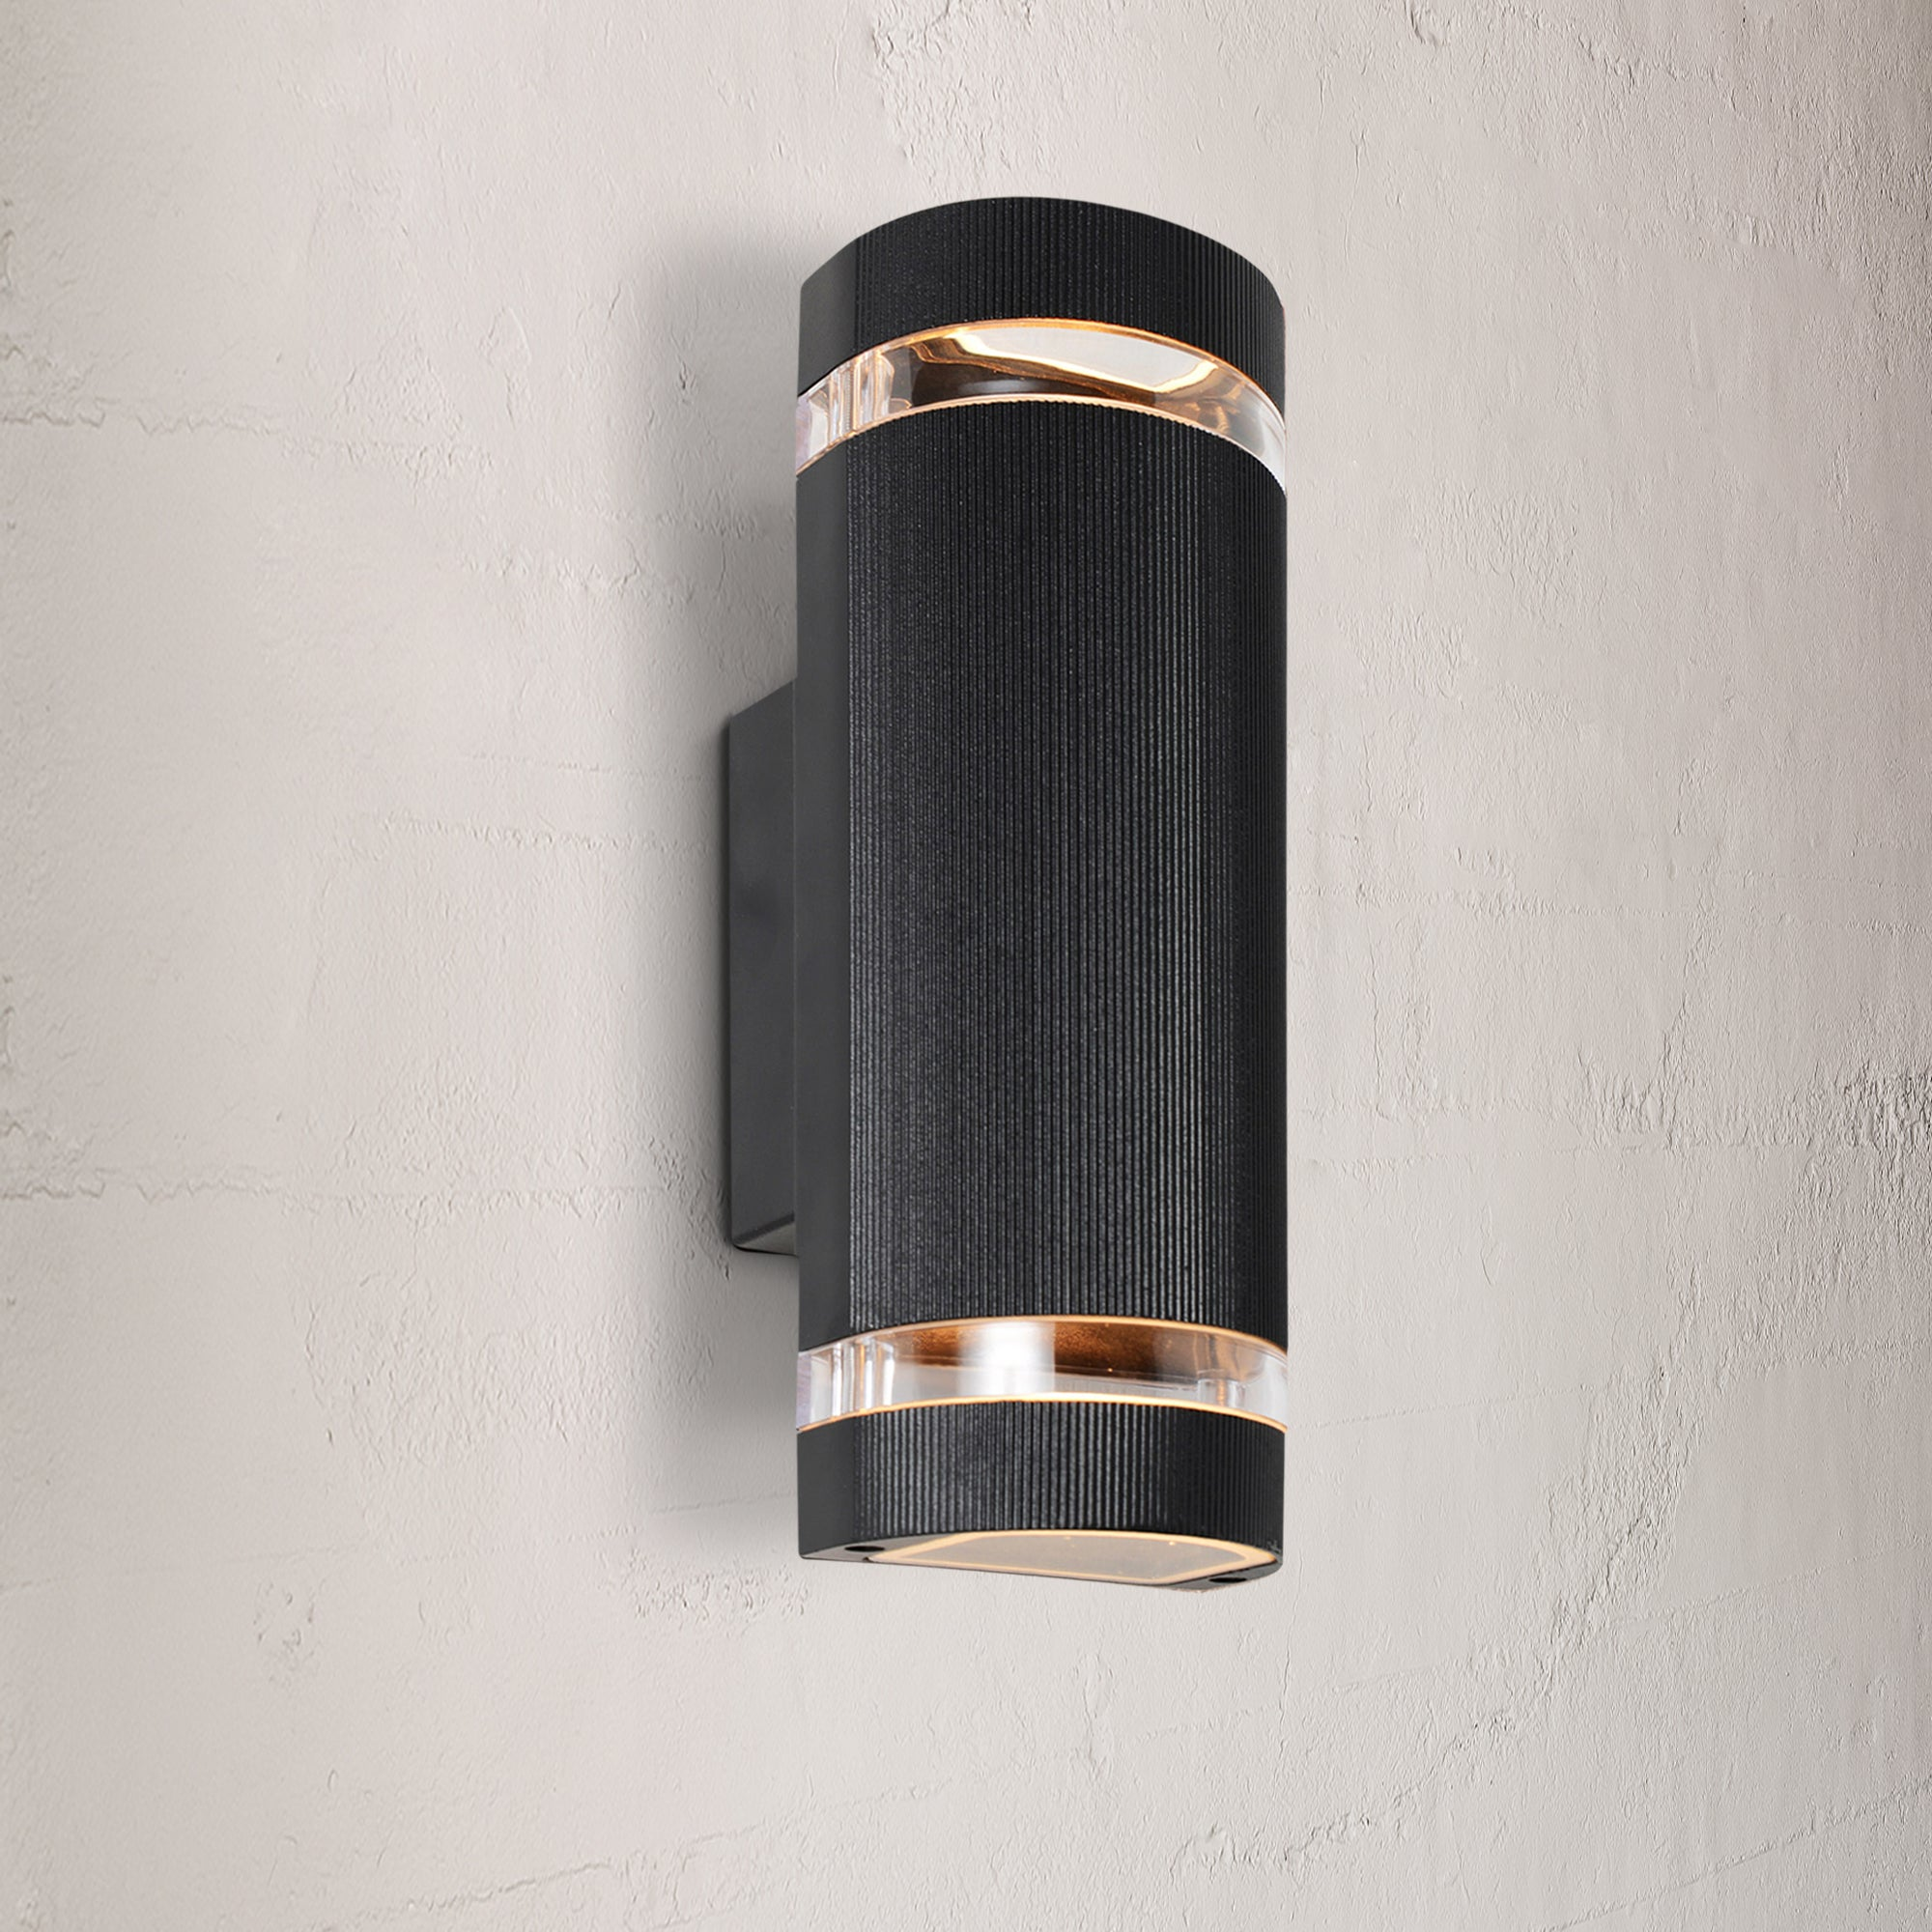 Image of Helios Black Up Down Outdoor Light Black